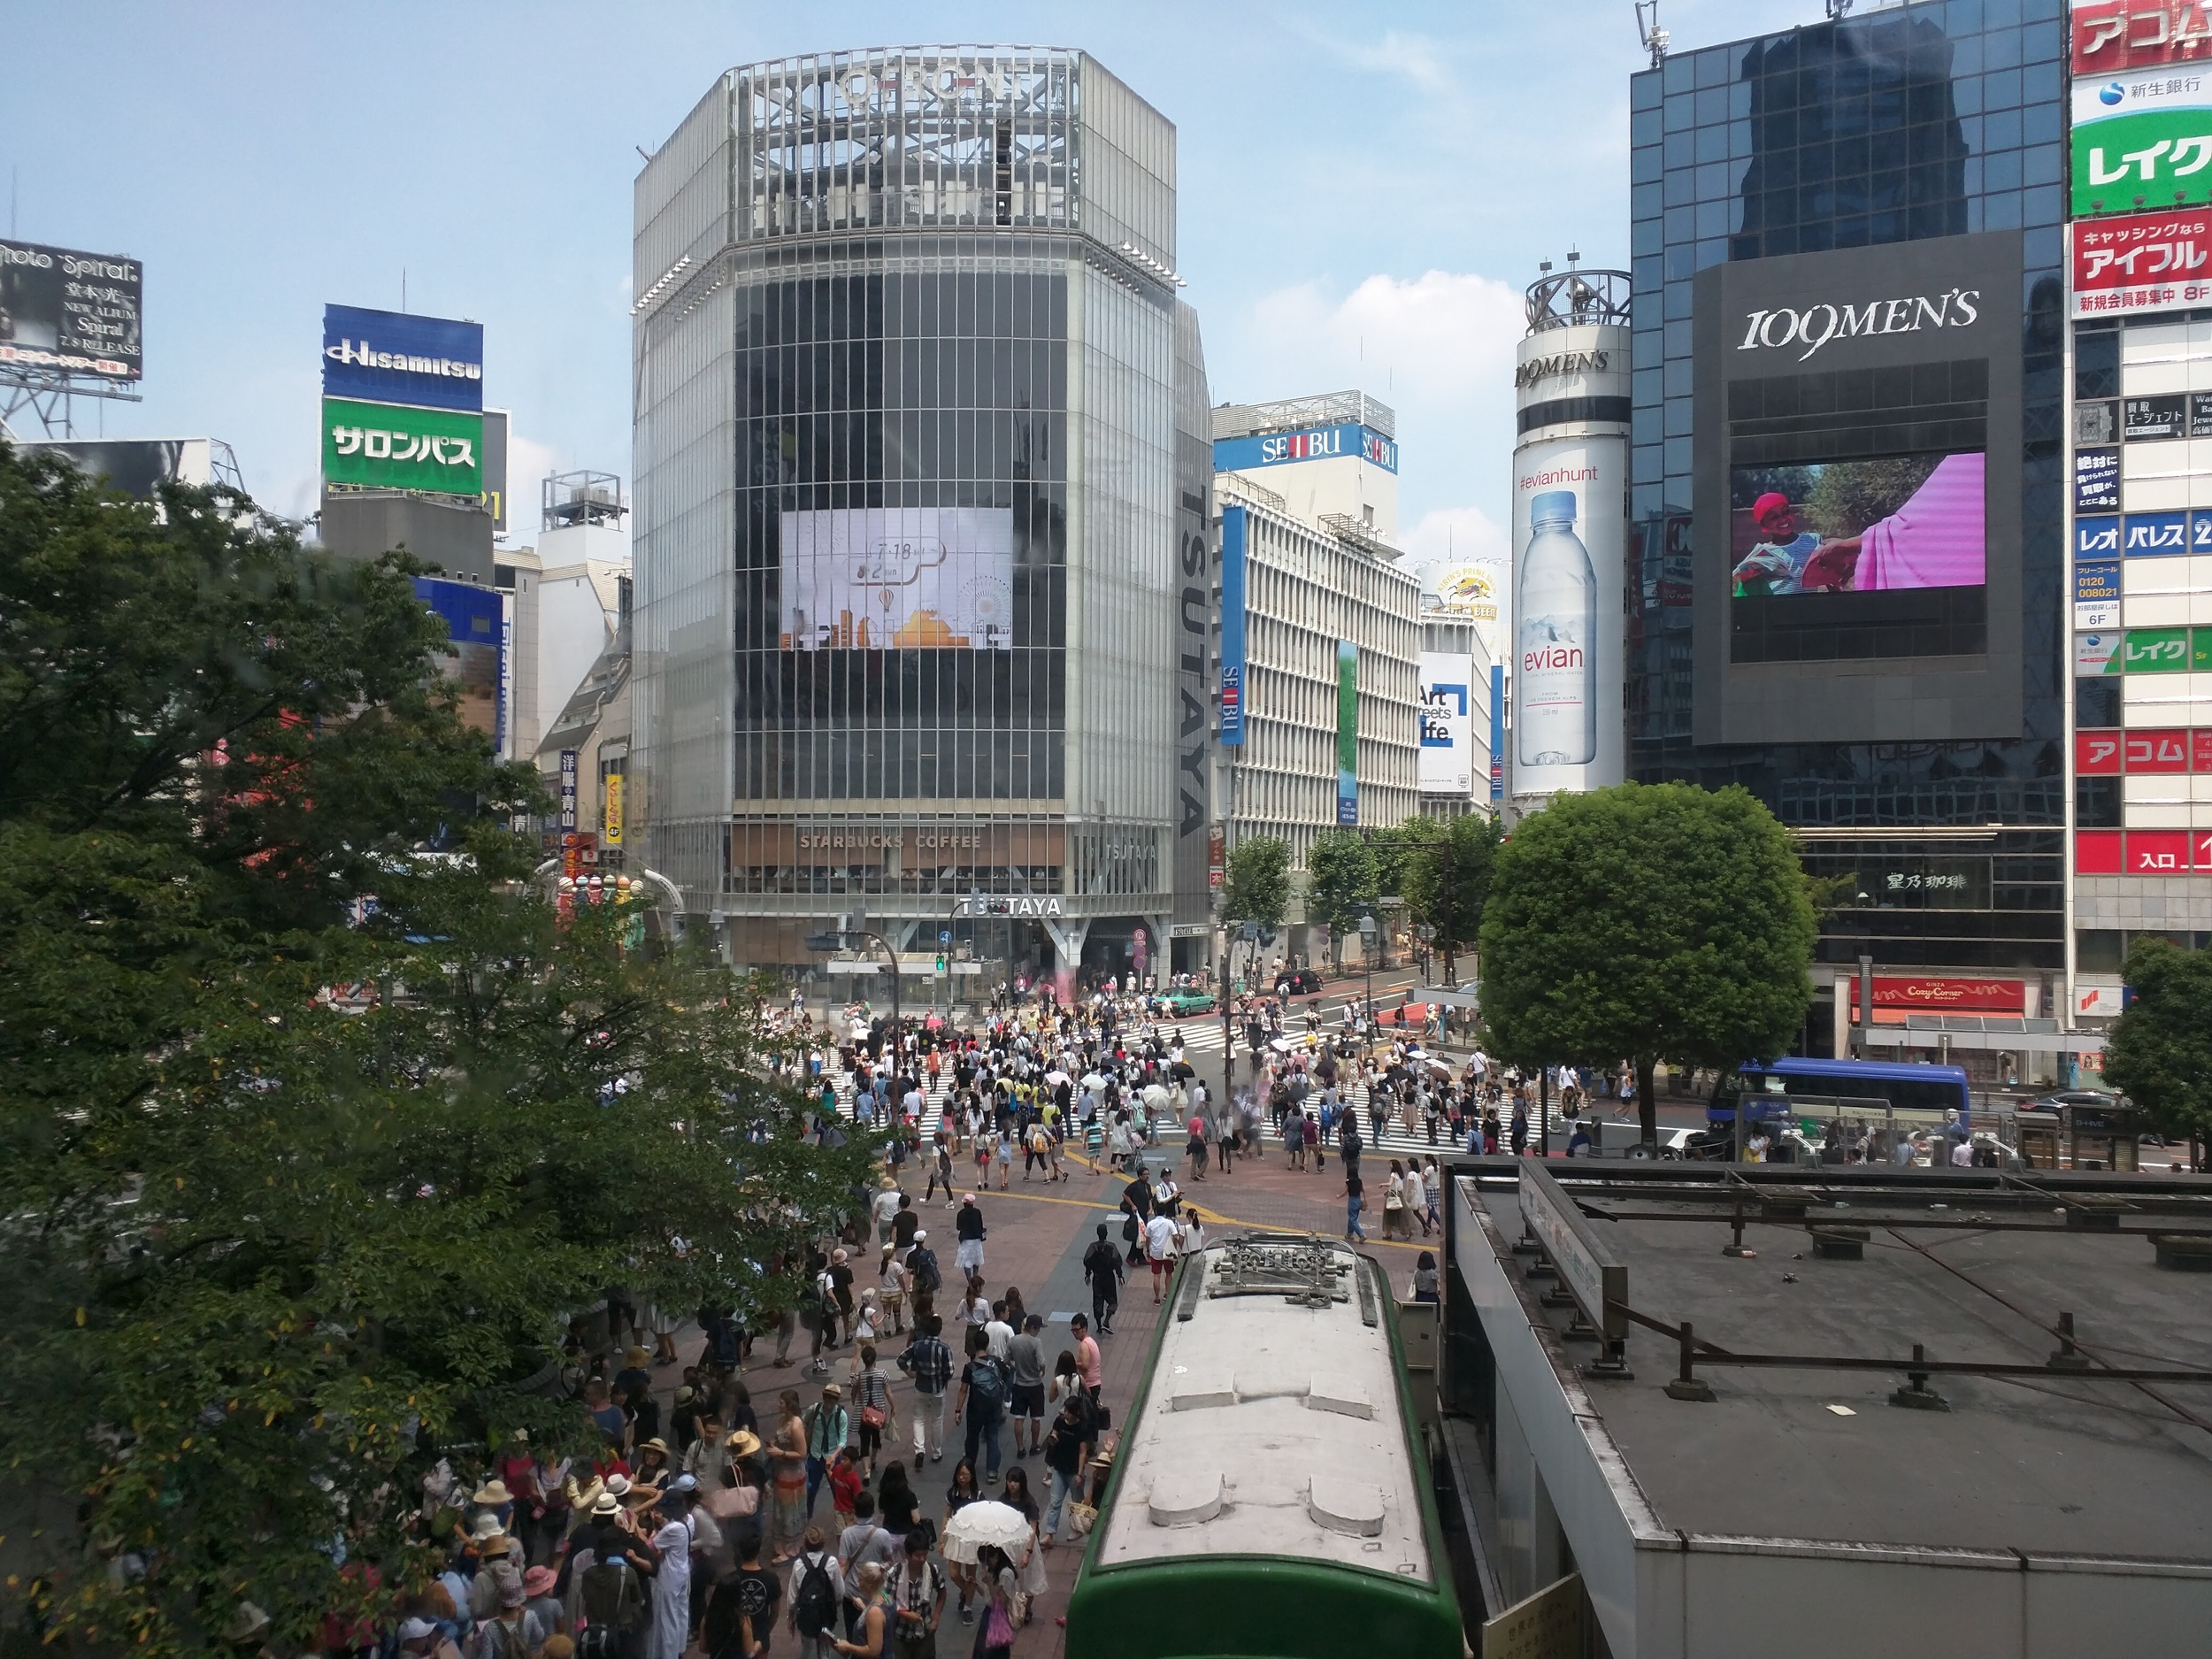 Shibuya Crossing - on peak days you can't see the street for all the people